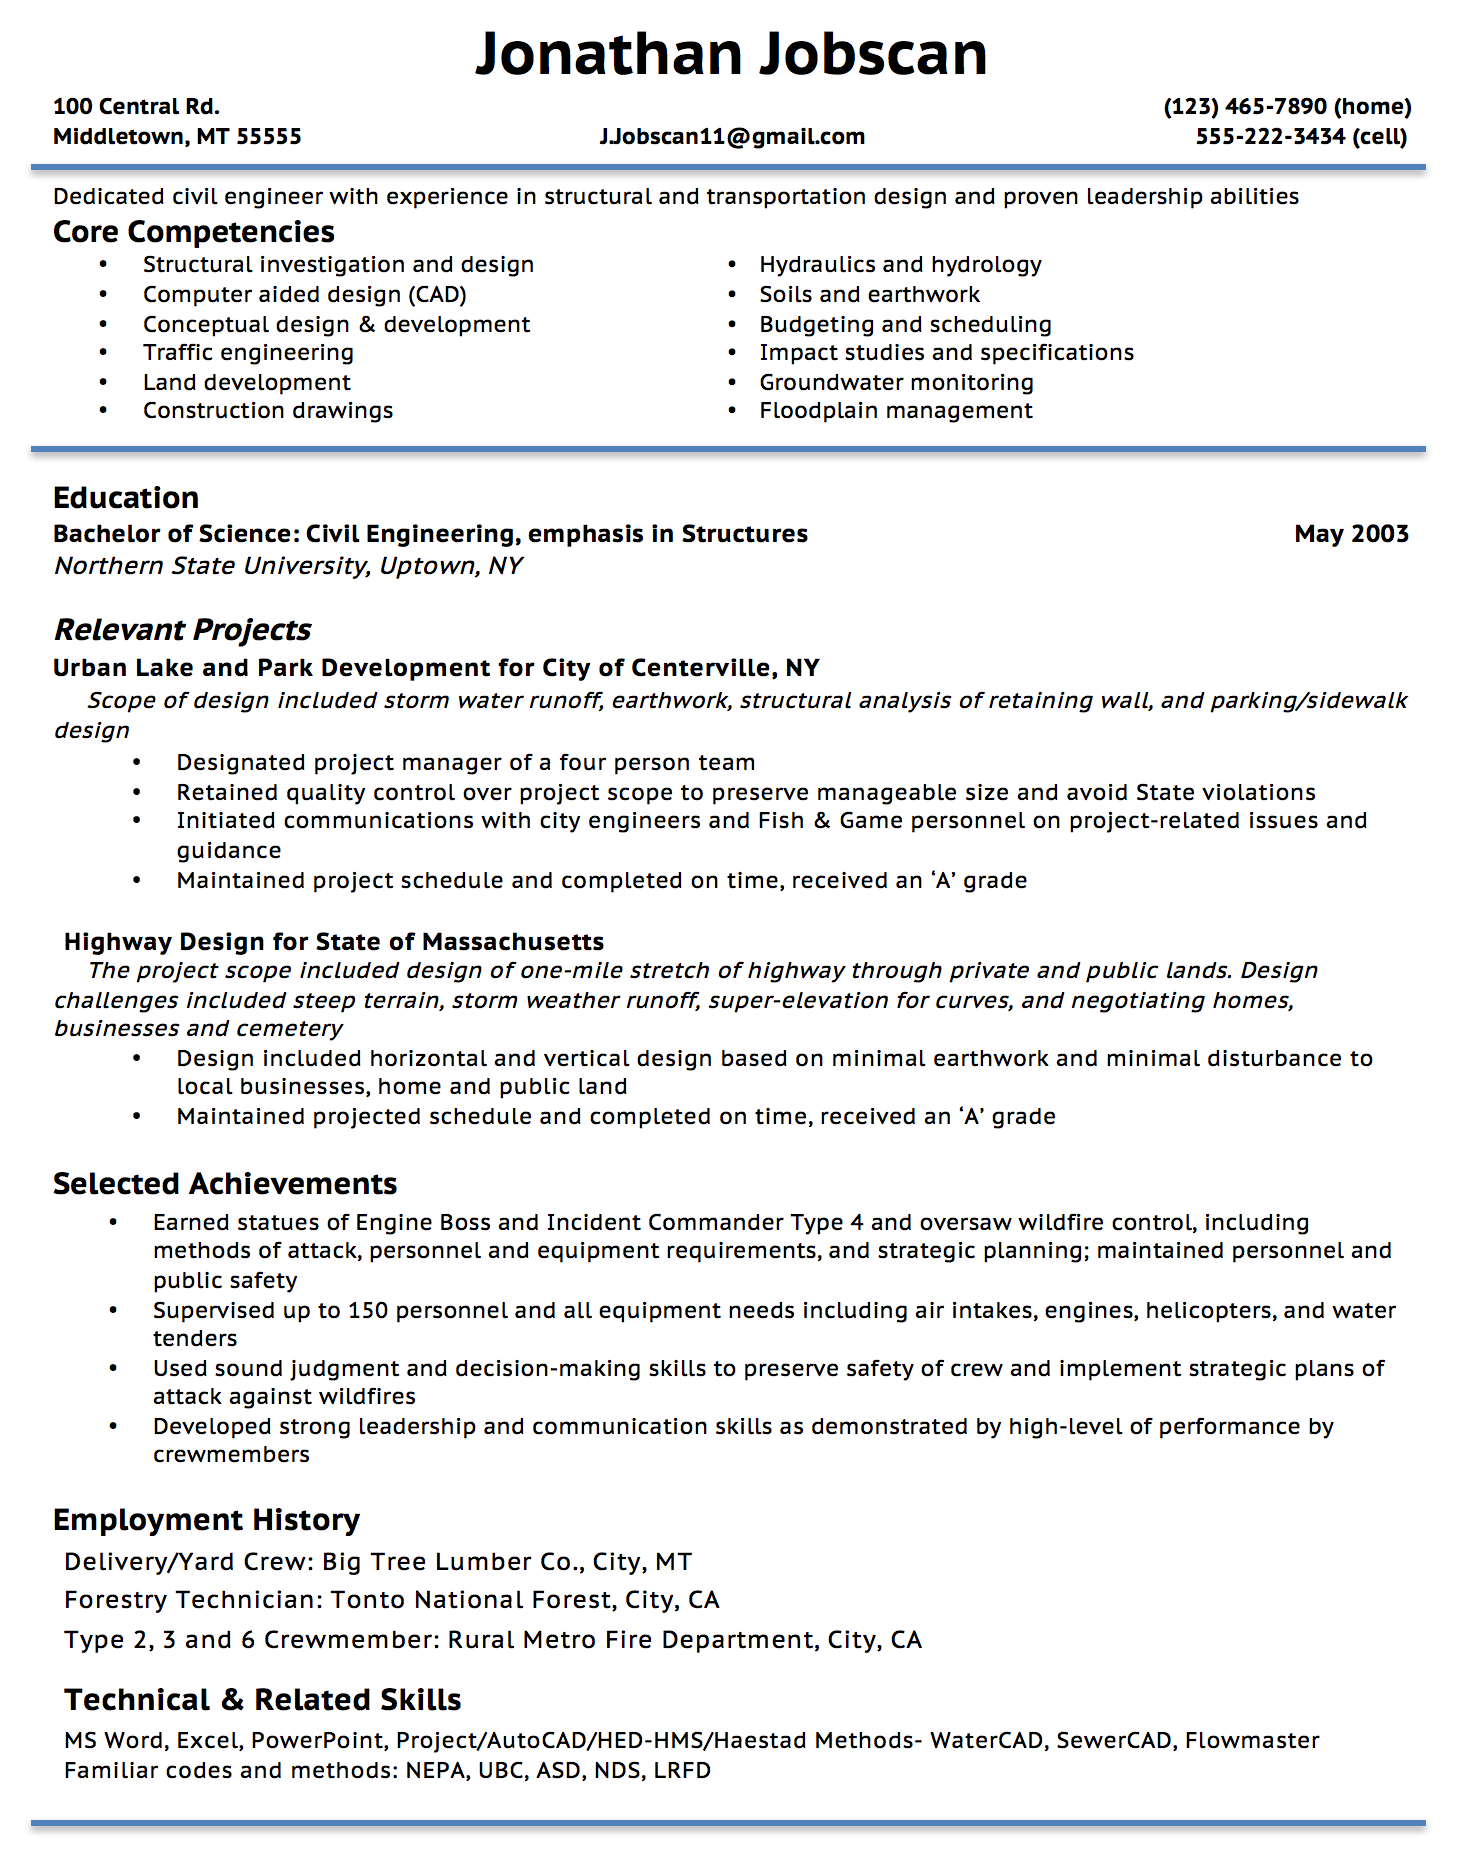 Opposenewapstandardsus  Unique Resume Writing Guide  Jobscan With Great Example Of A Functional Resume Format With Beauteous General Resume Objective Statement Also Business Intelligence Analyst Resume In Addition Good College Resume And Restaurant Resume Skills As Well As Teacher Resume Template Free Additionally Resume Tempates From Jobscanco With Opposenewapstandardsus  Great Resume Writing Guide  Jobscan With Beauteous Example Of A Functional Resume Format And Unique General Resume Objective Statement Also Business Intelligence Analyst Resume In Addition Good College Resume From Jobscanco